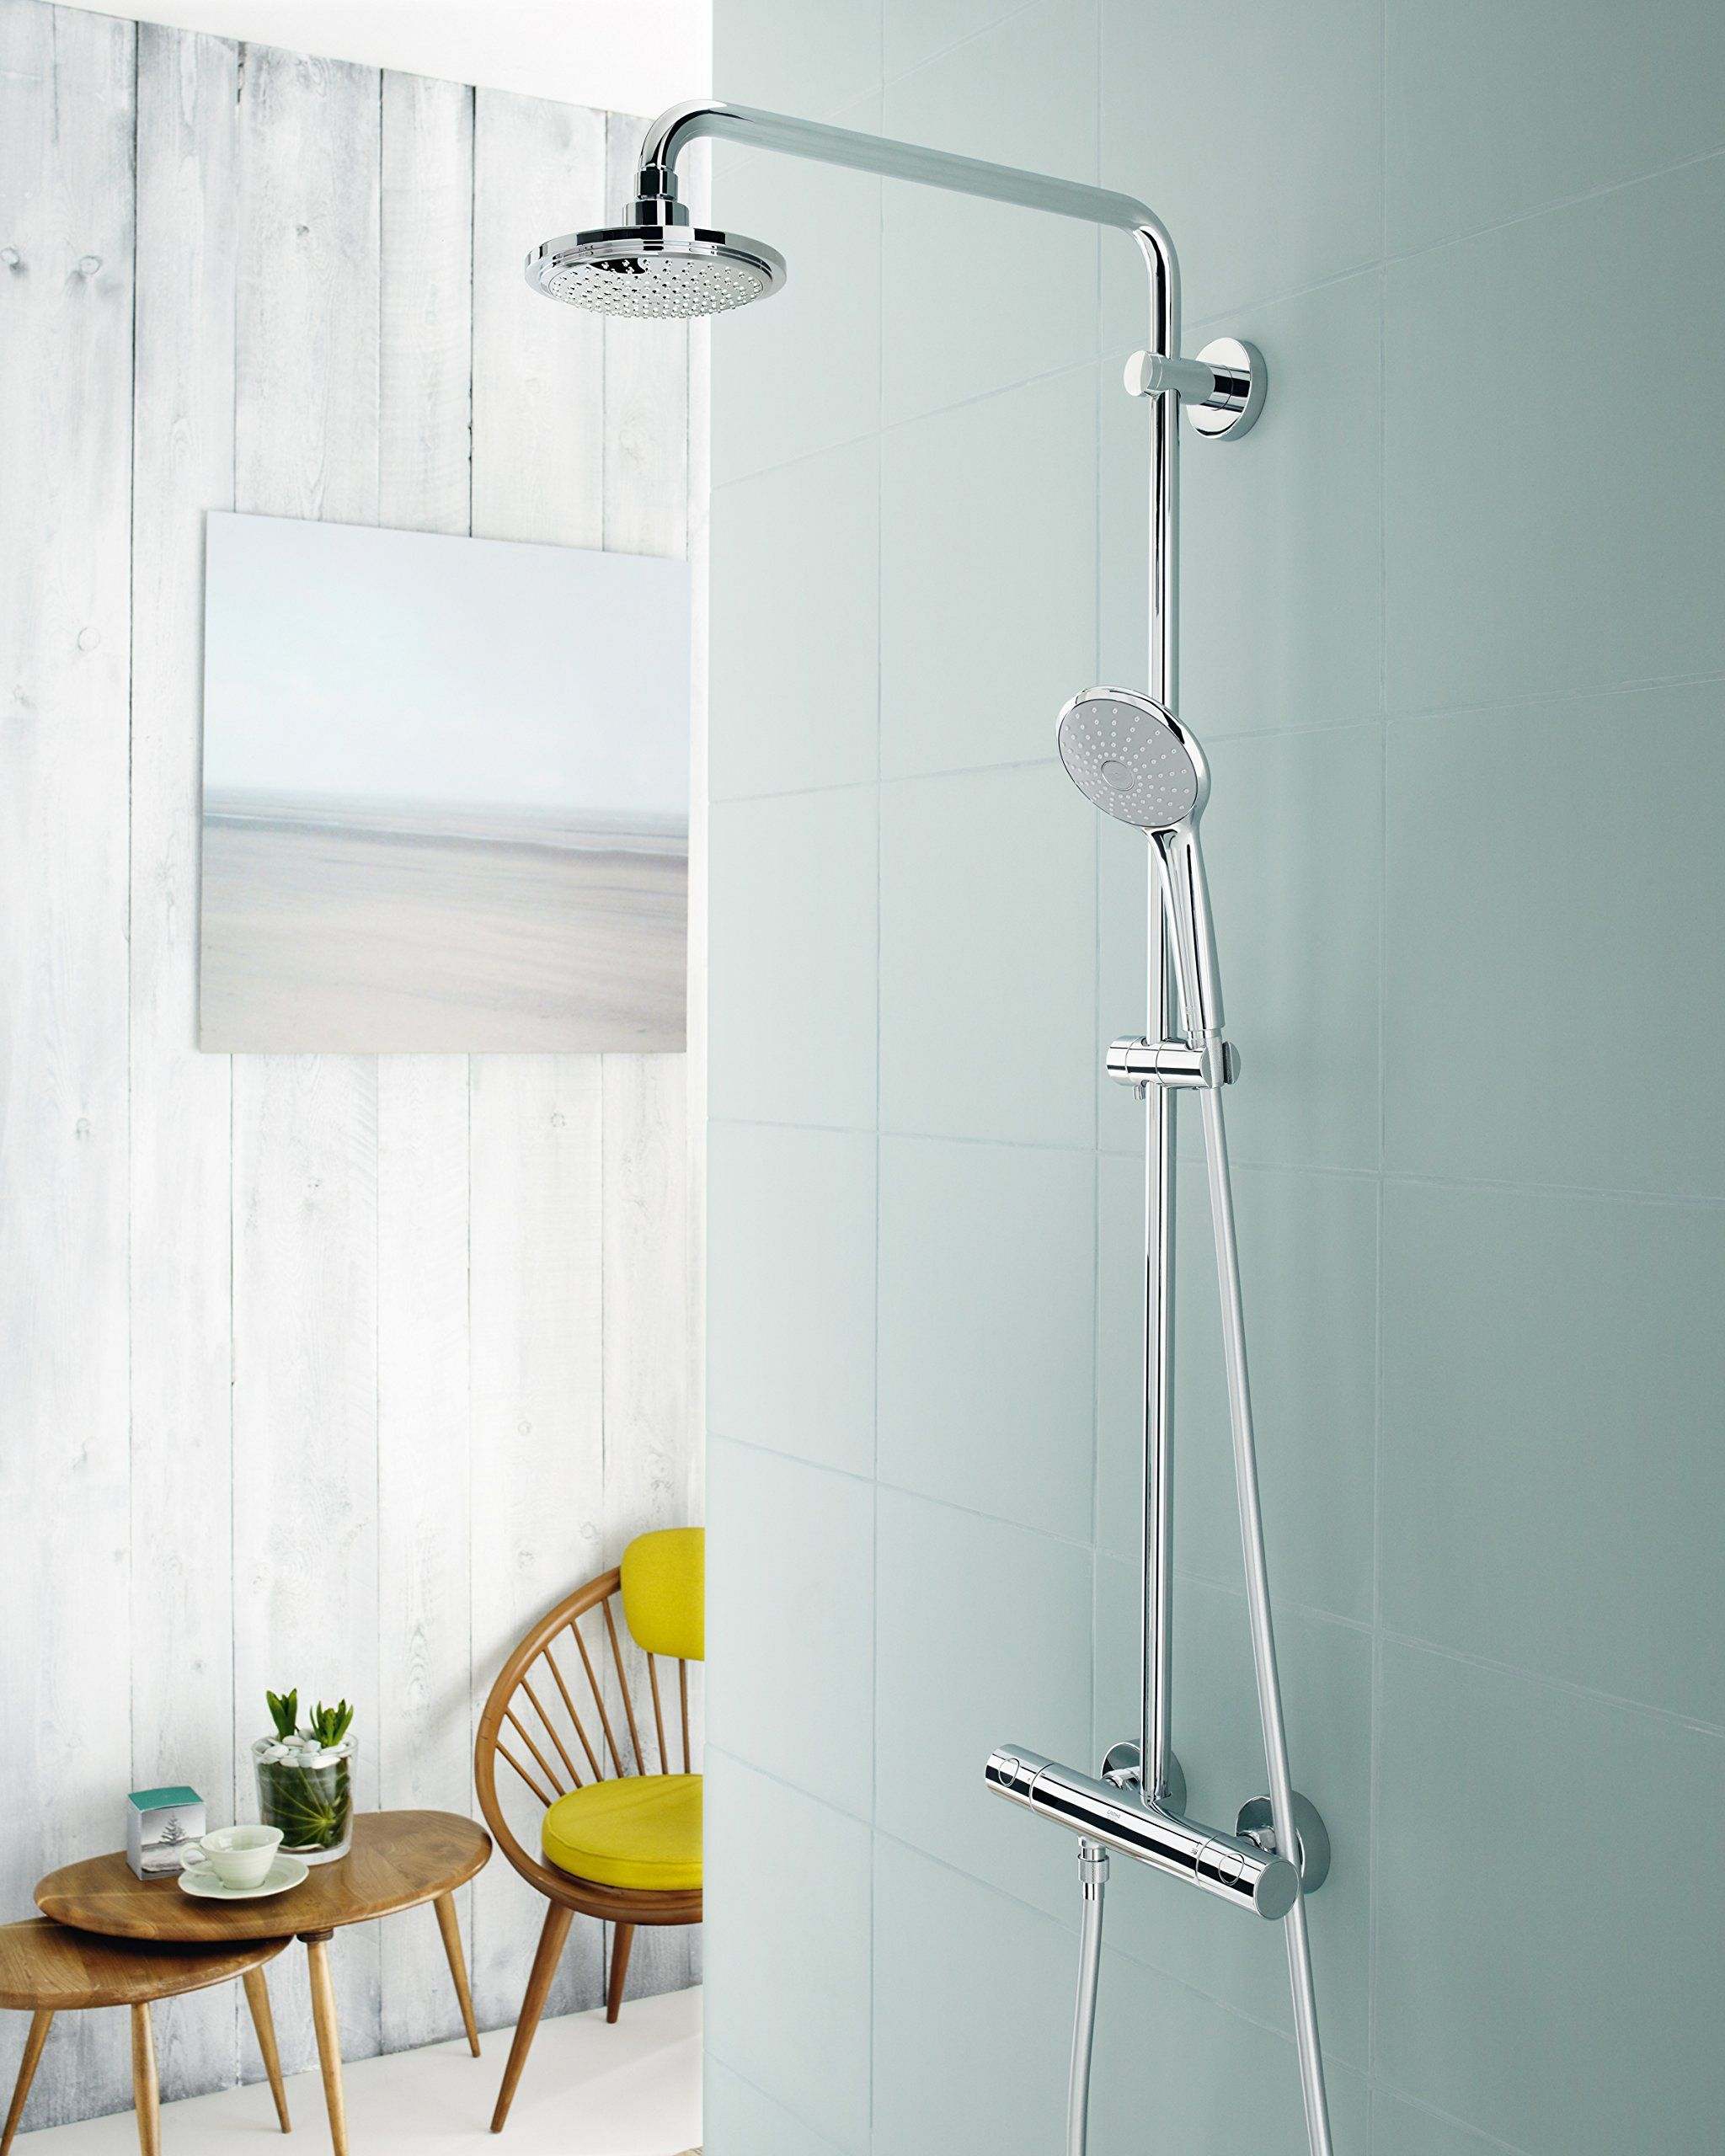 Grohe Euphoria Douchesysteem 180 Chroom Grohe 26128000 Euphoria Shower System With Shower Head And Hand